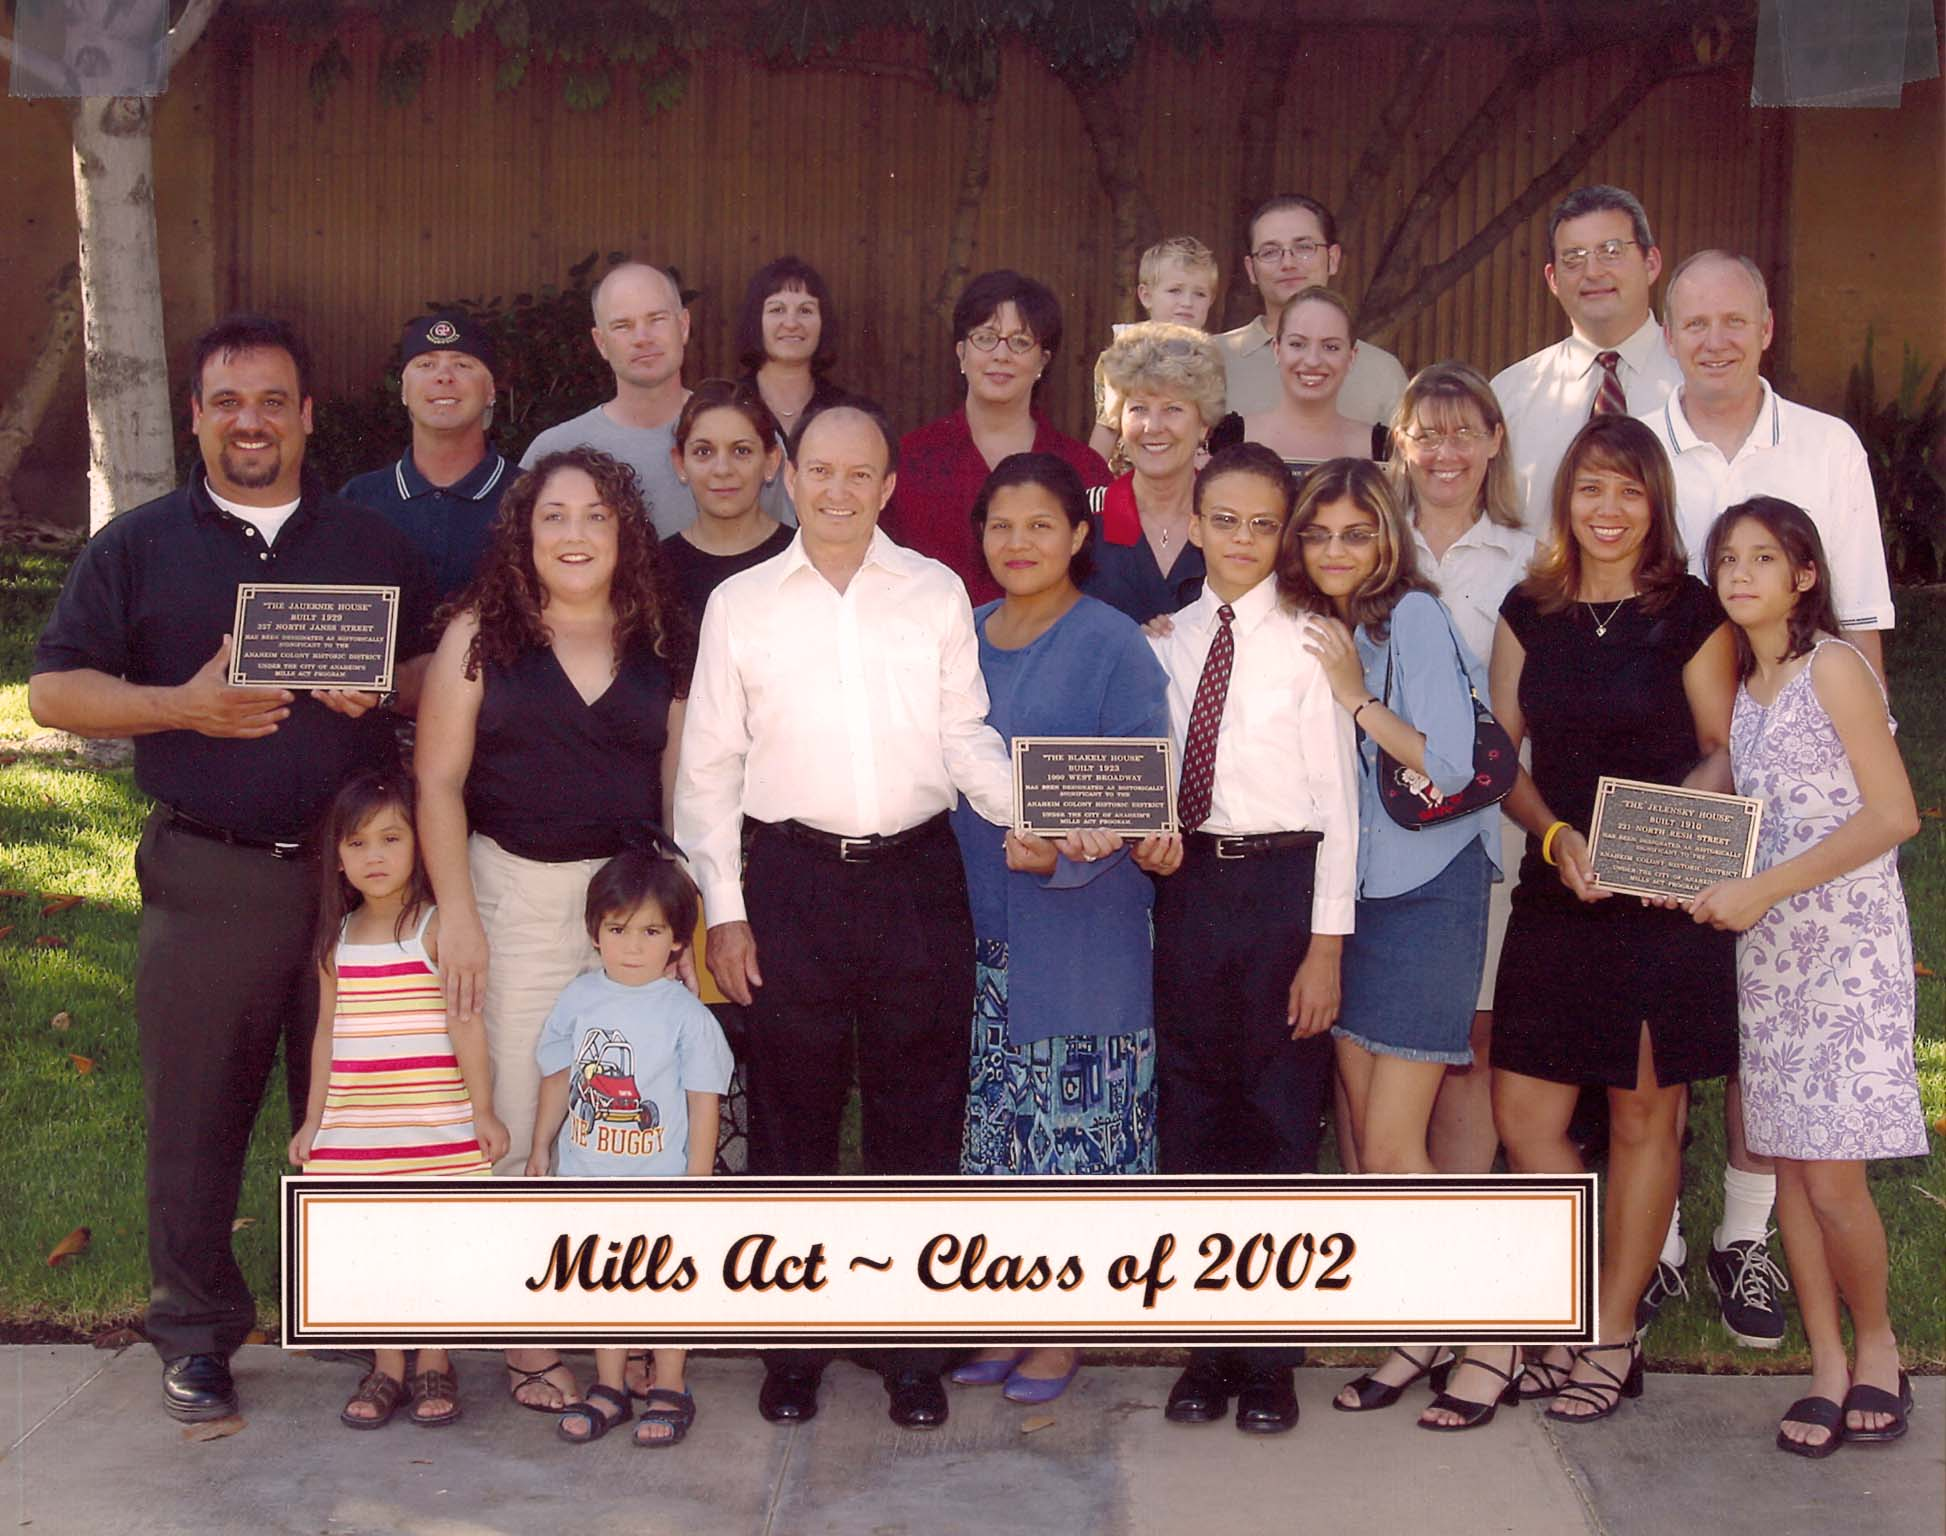 Group photo with the onwers holding their plaques for the Mills Act Participating Properties from 2002